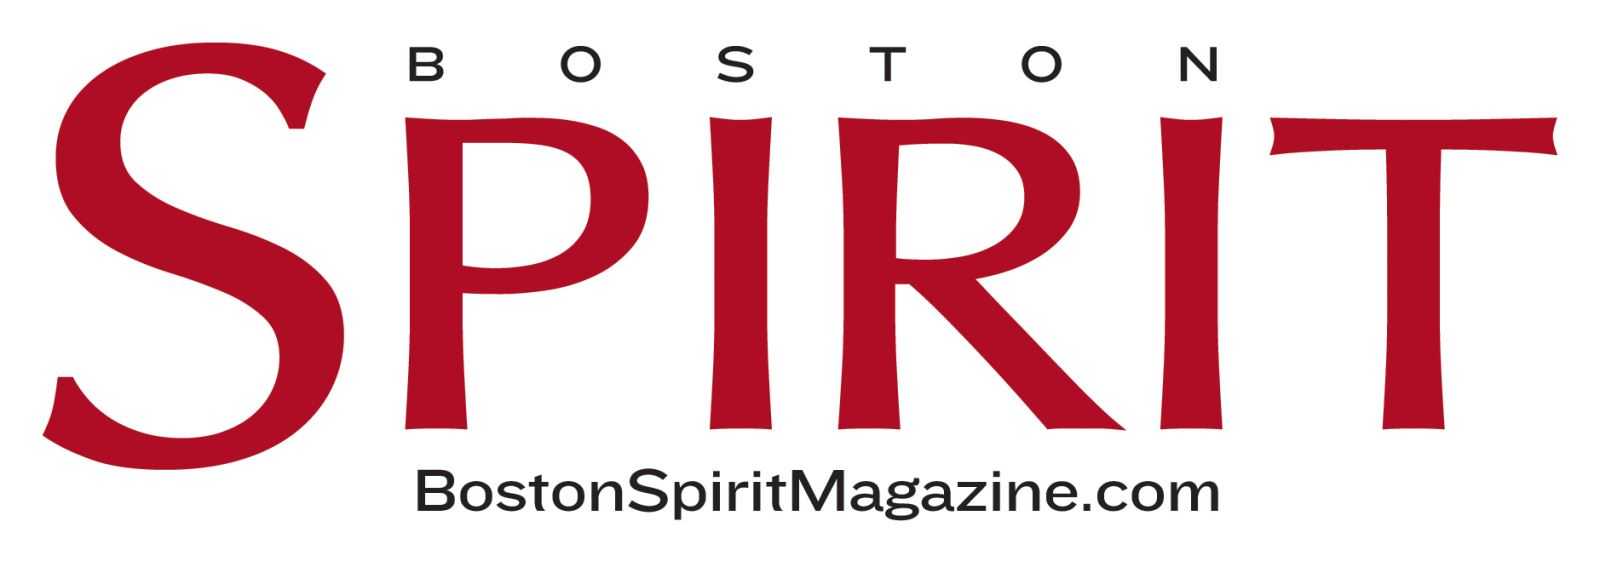 Boston Spirit Magazine logo